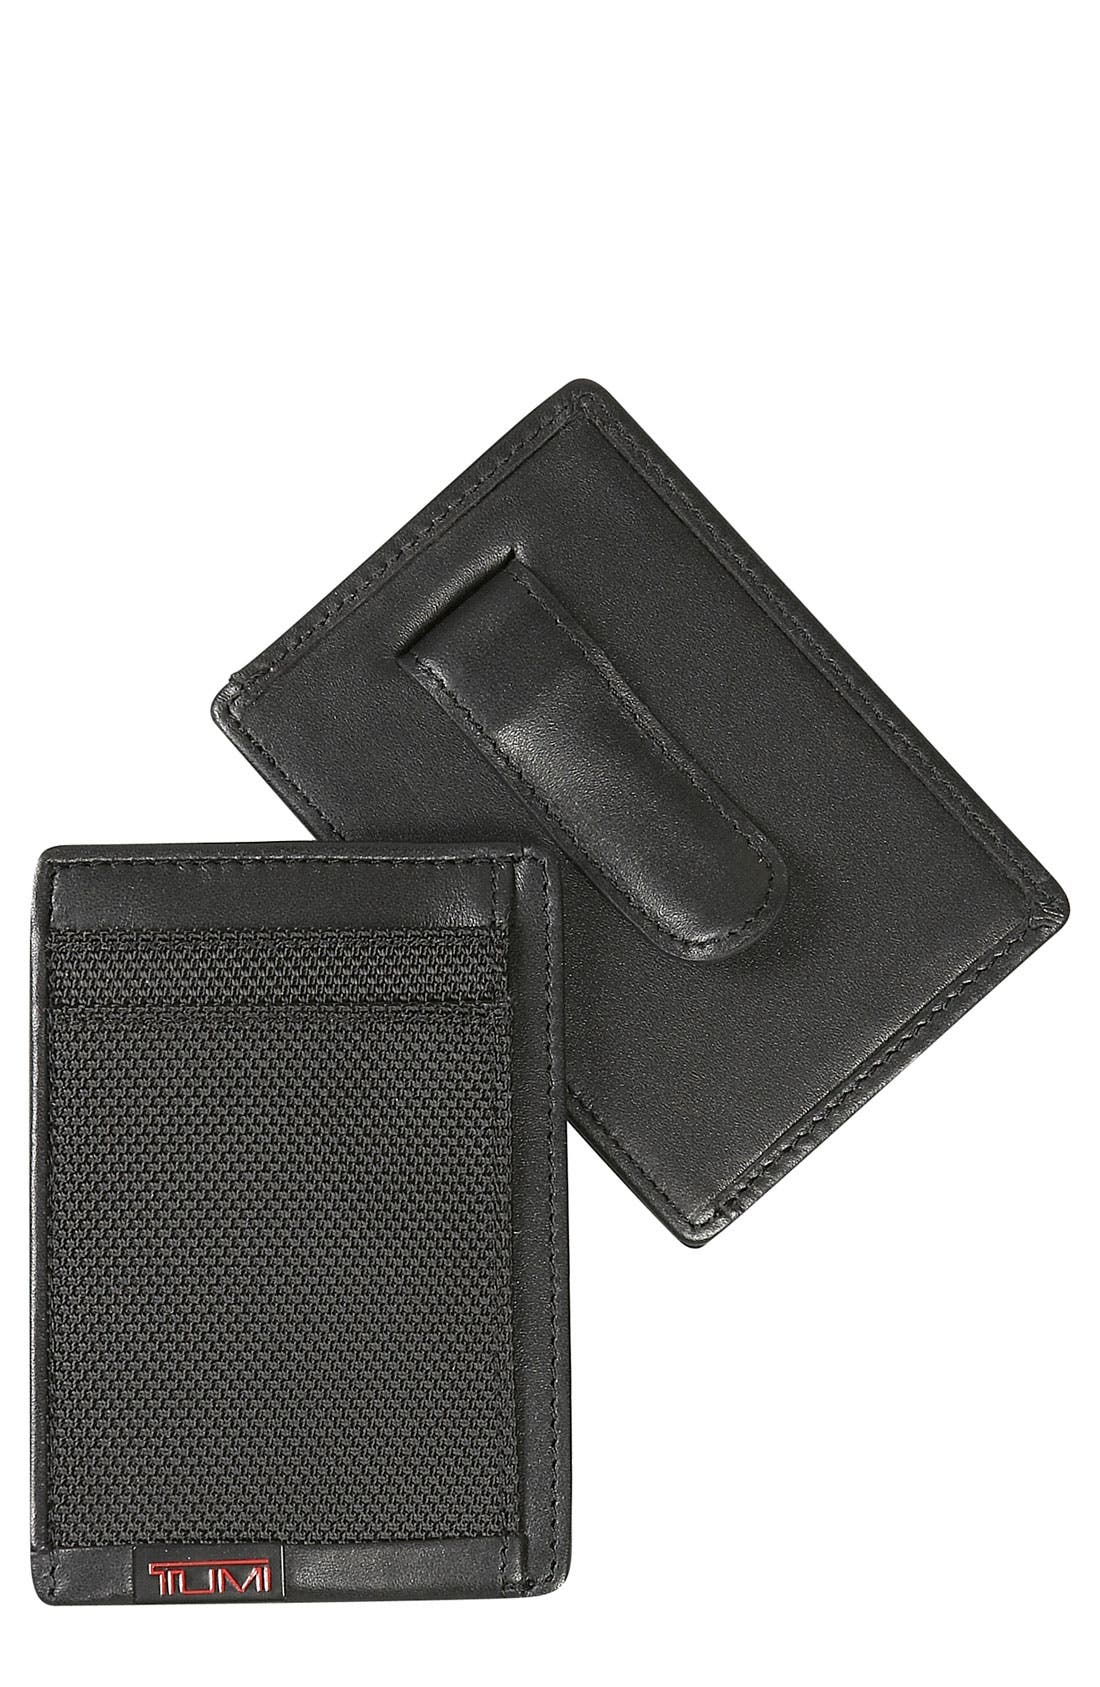 Alternate Image 1 Selected - Tumi 'Alpha' Money Clip Card Case